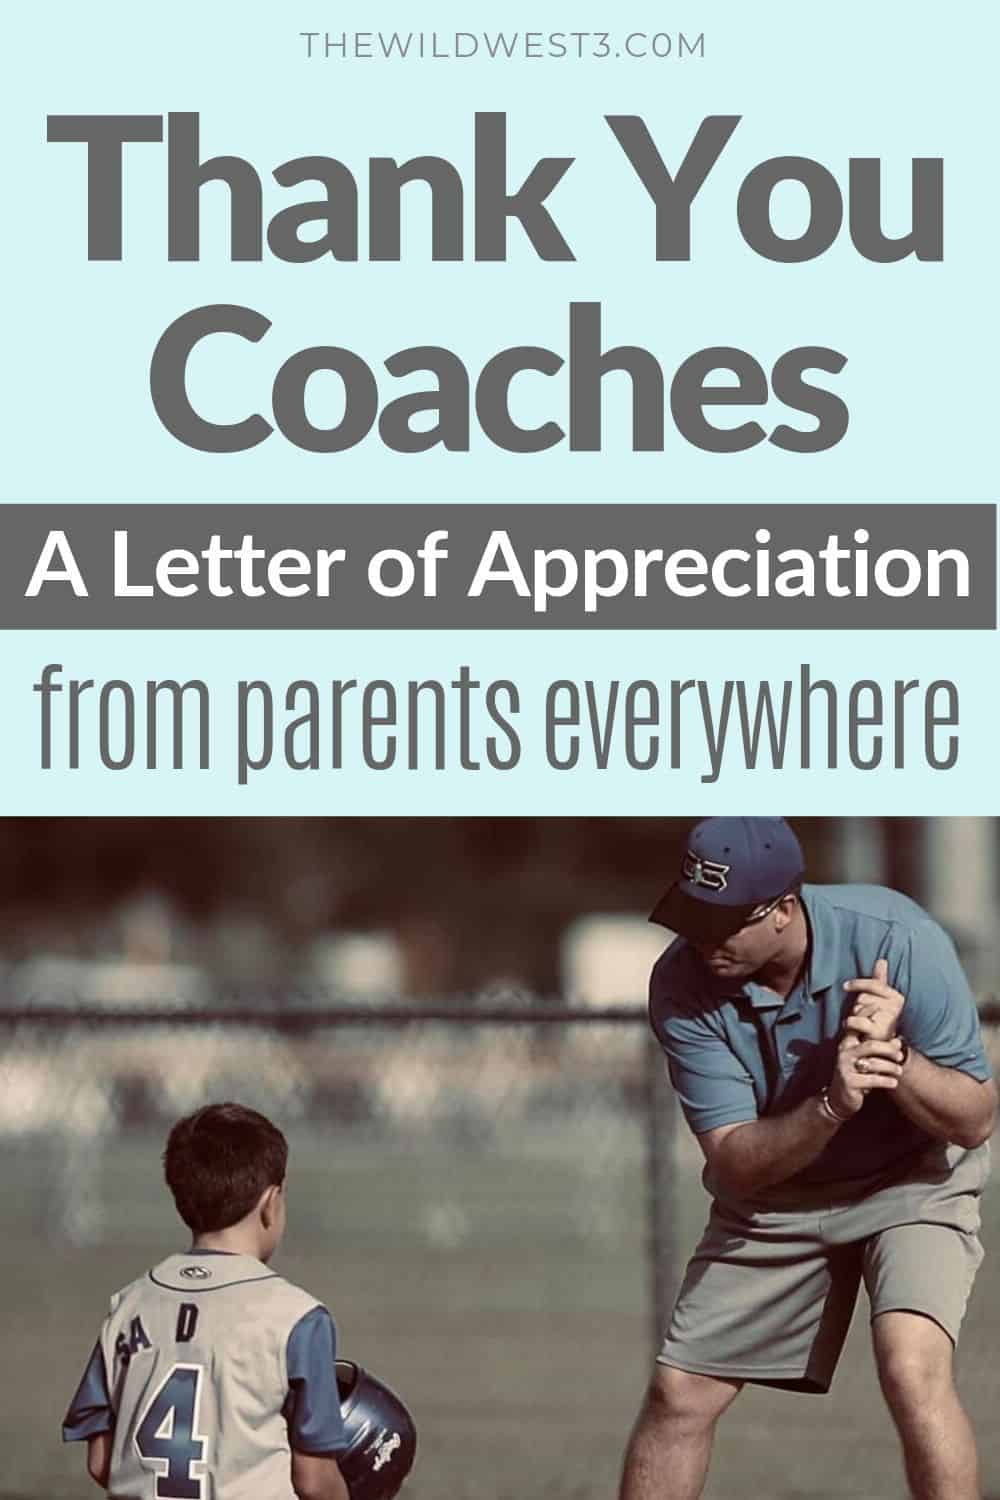 Thank you letter to coach from parents pin image